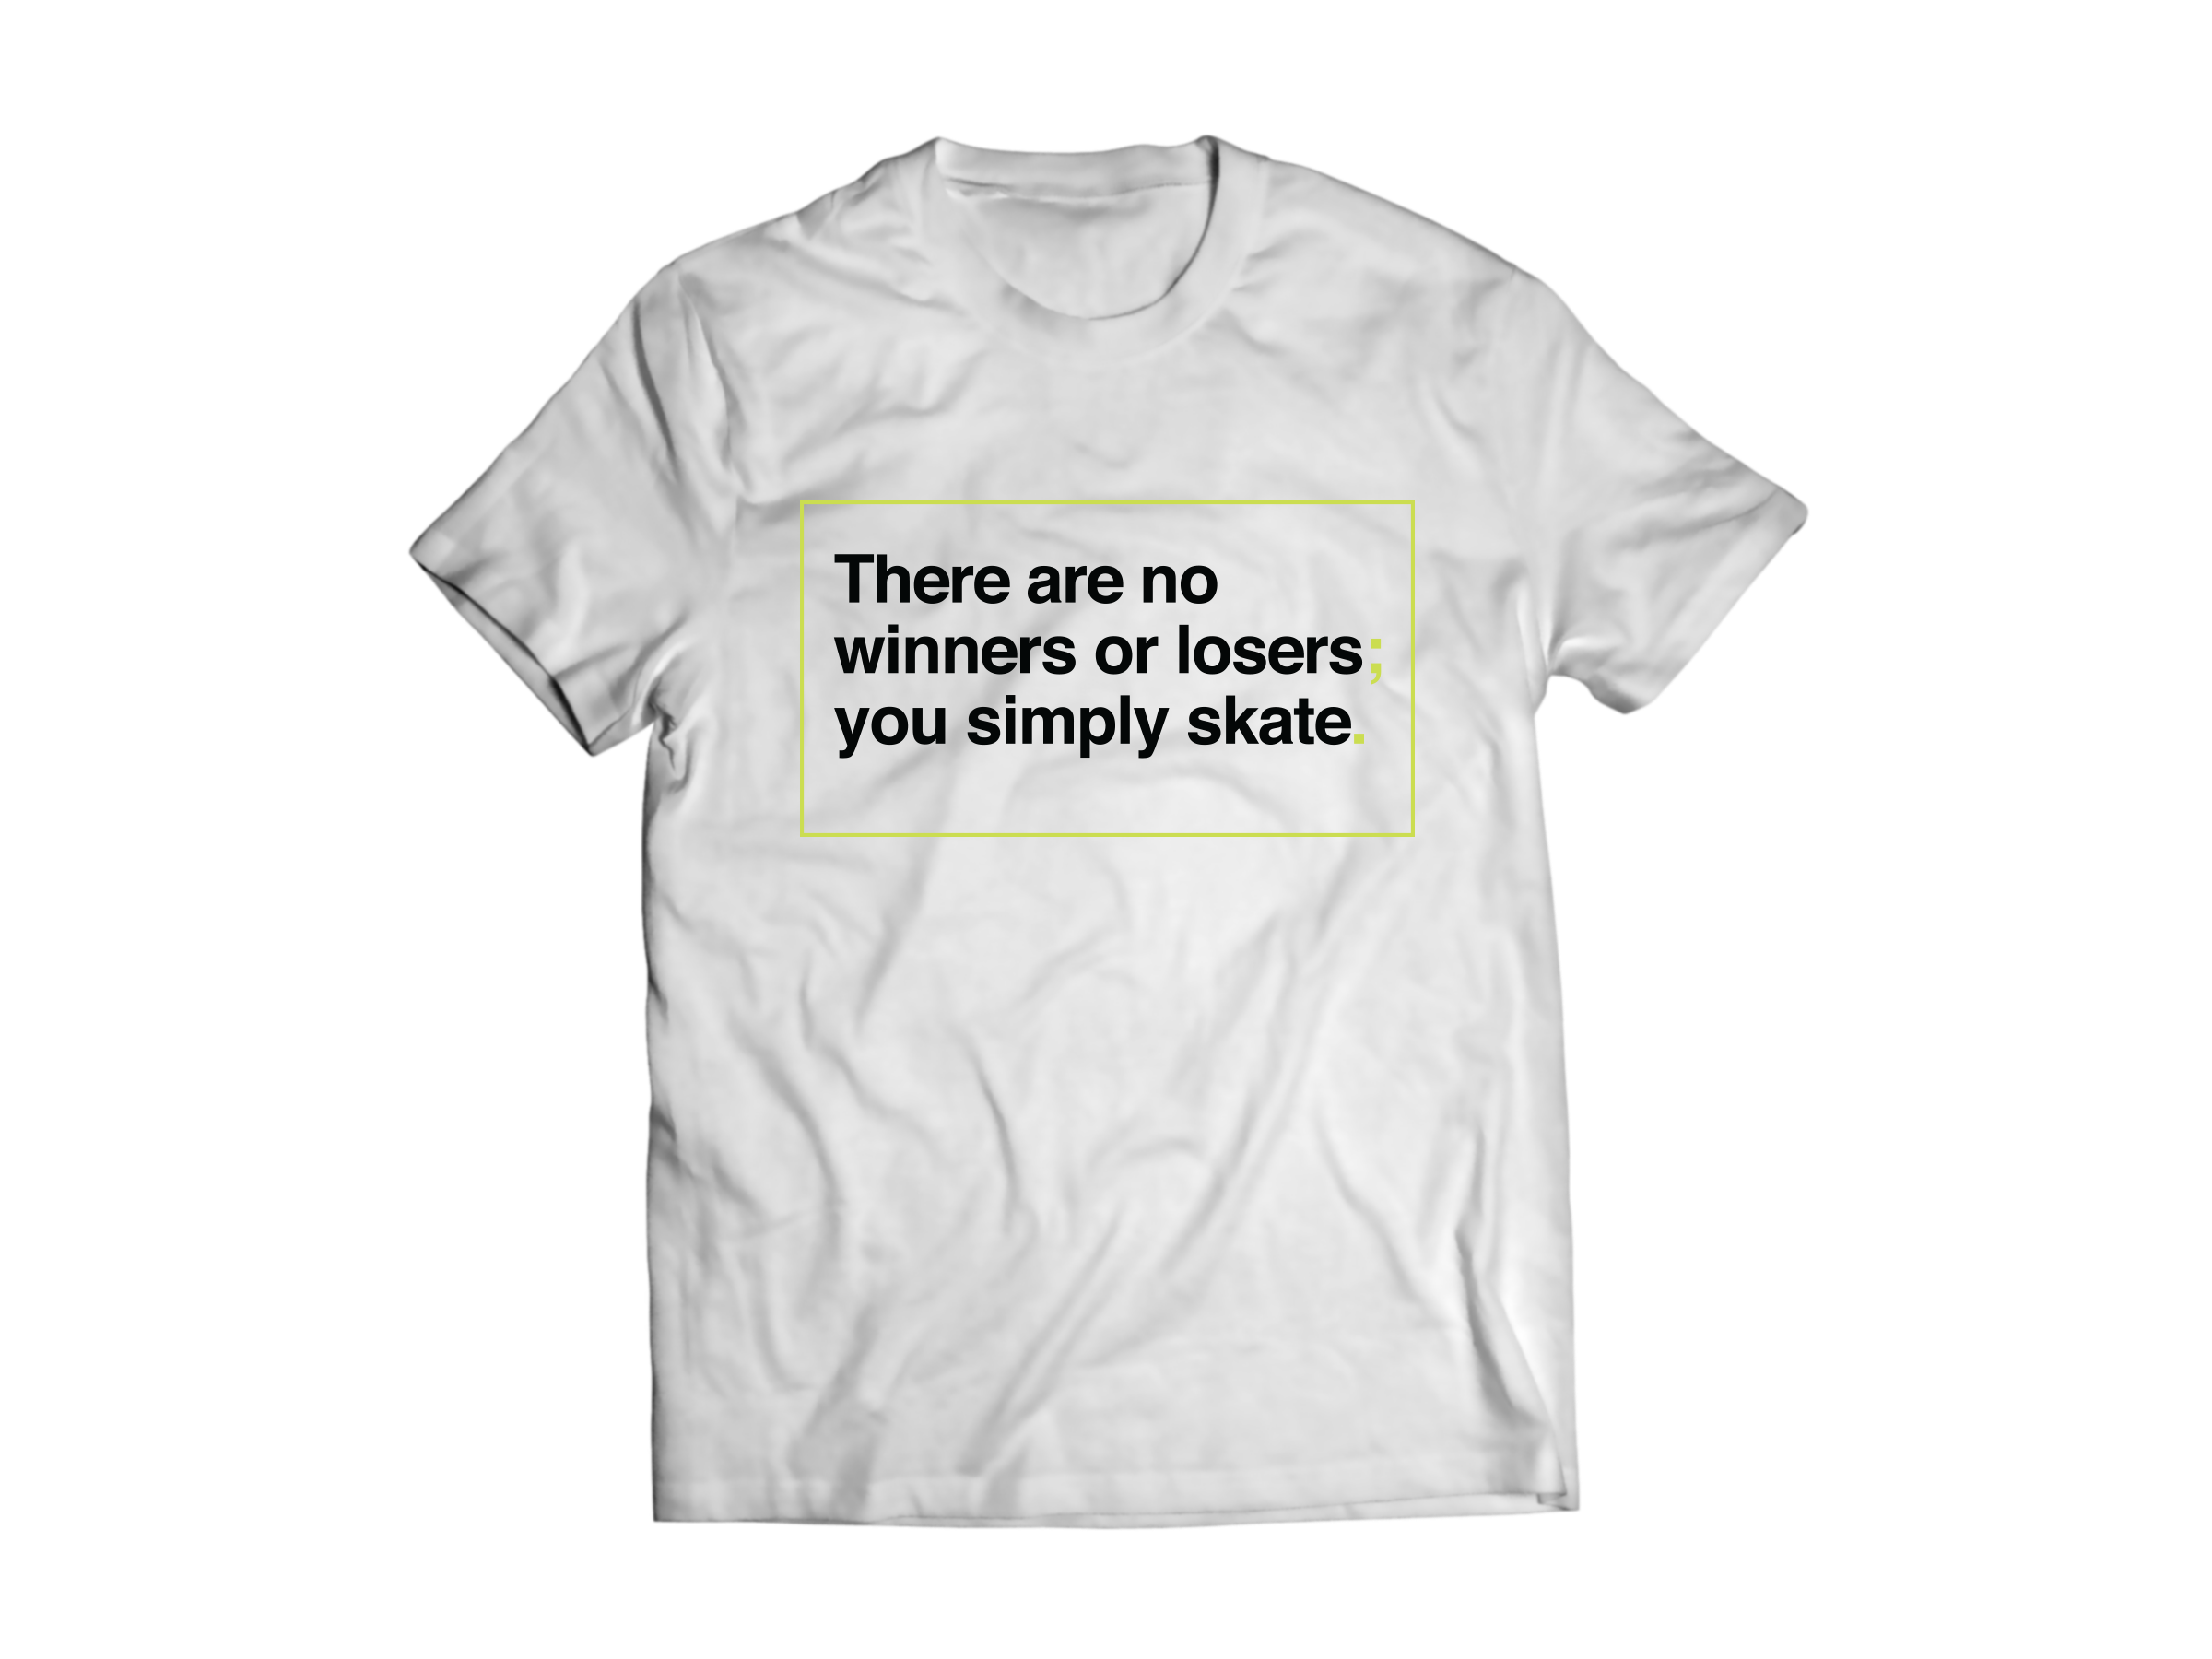 Free Thought Skate Co.T-shirt Design